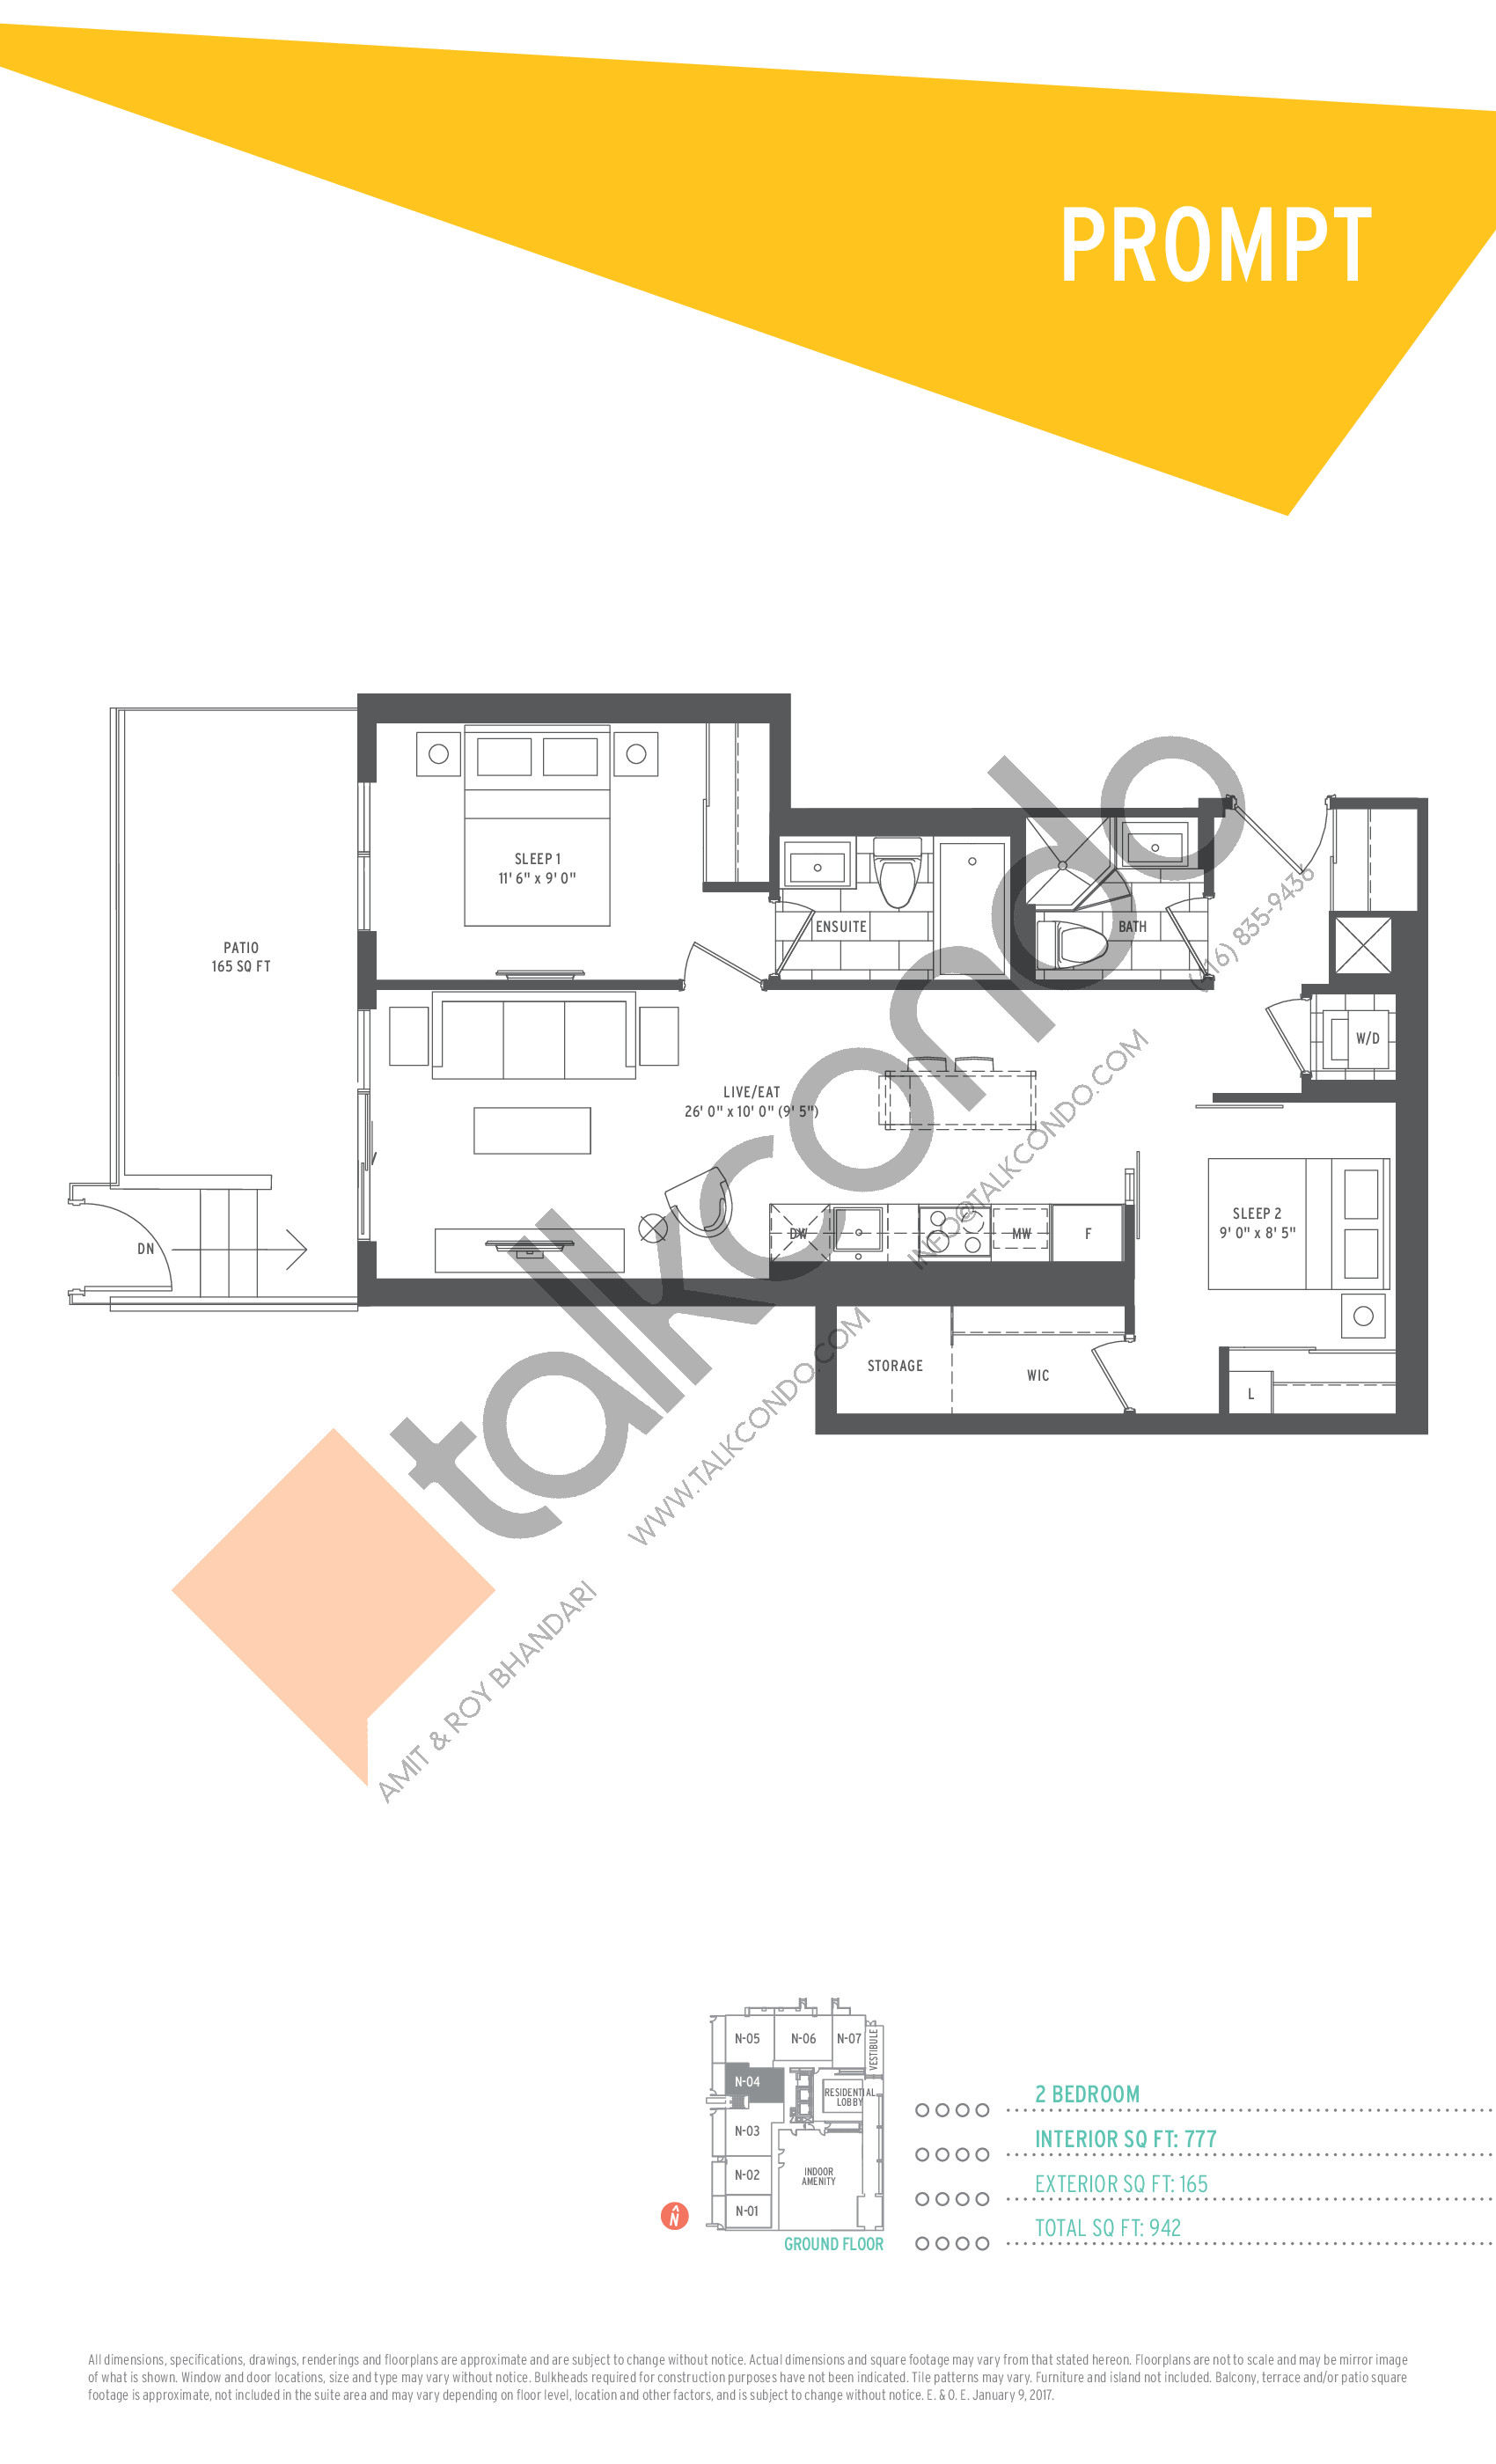 Prompt Floor Plan at SuperSonic Condos - 777 sq.ft